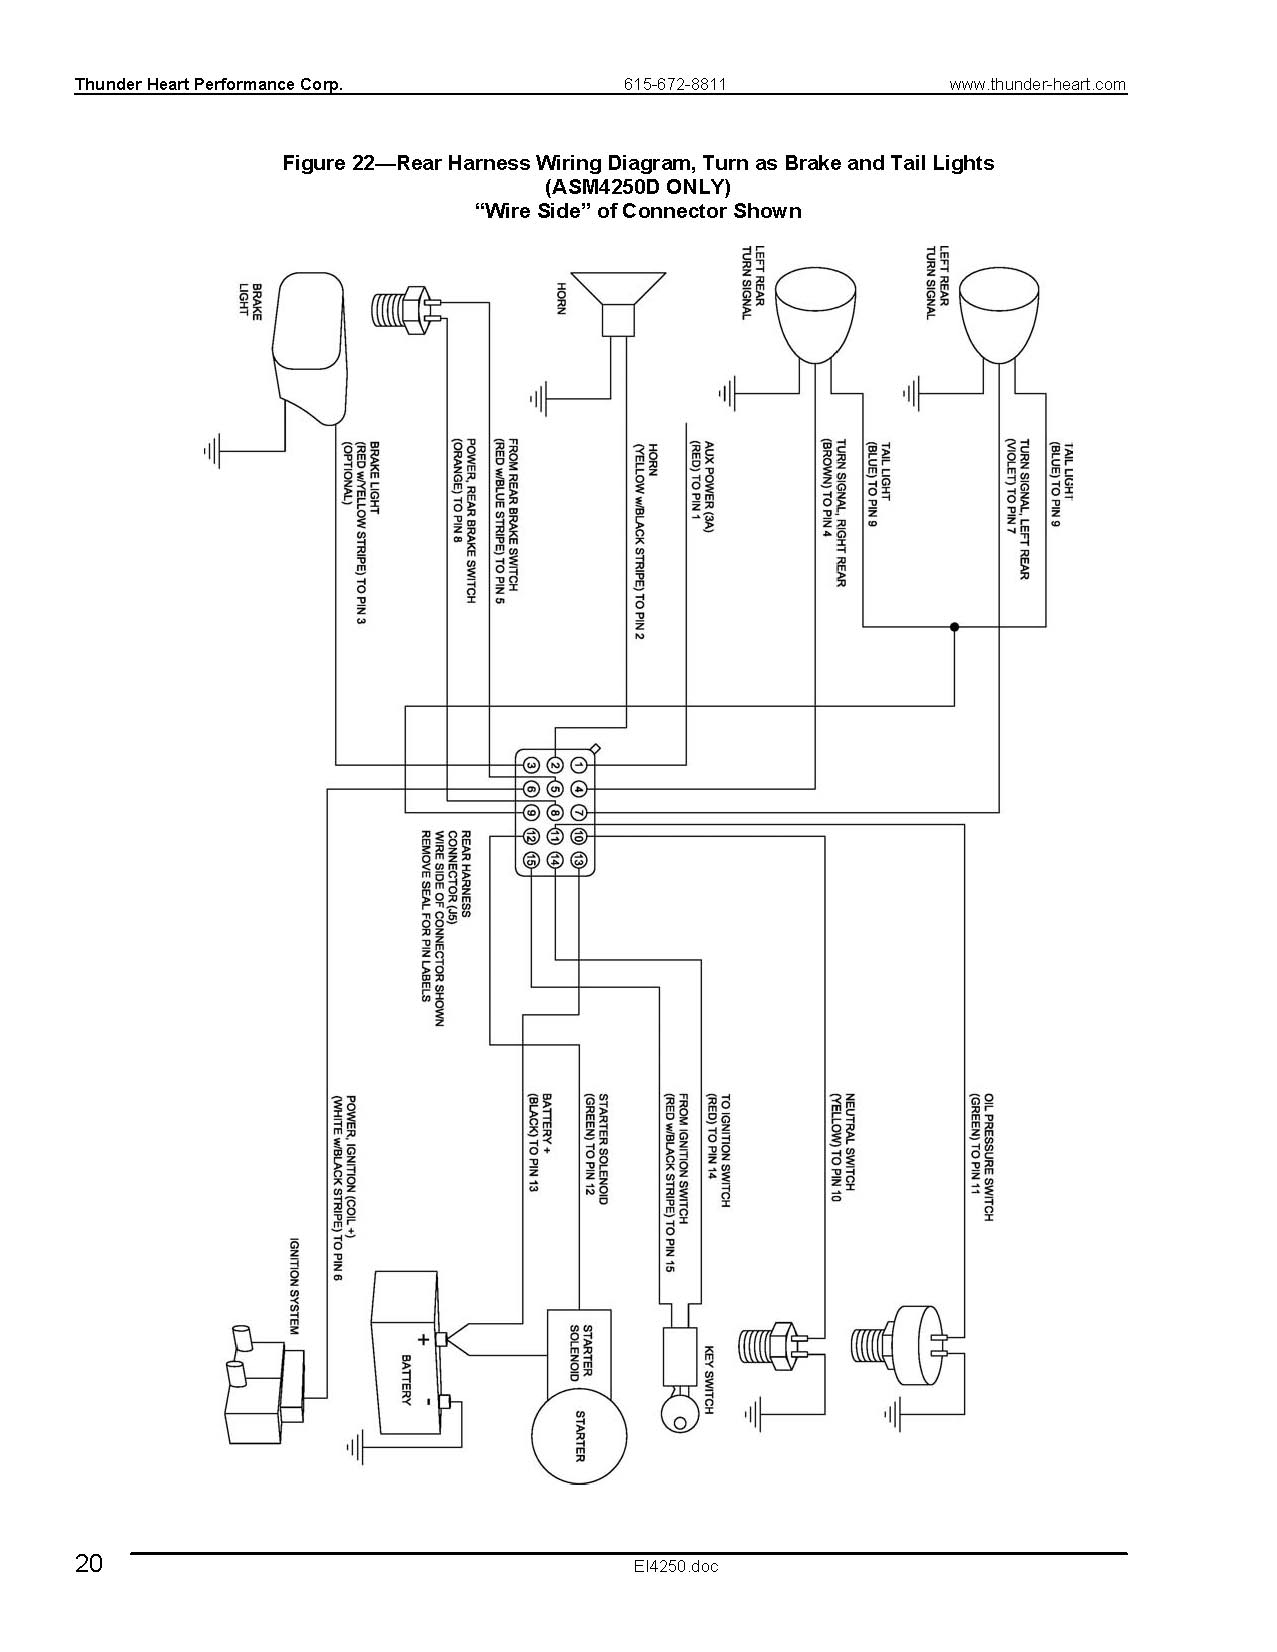 2009 Harley Flh Wiring Diagram Another Blog About Parts Auto